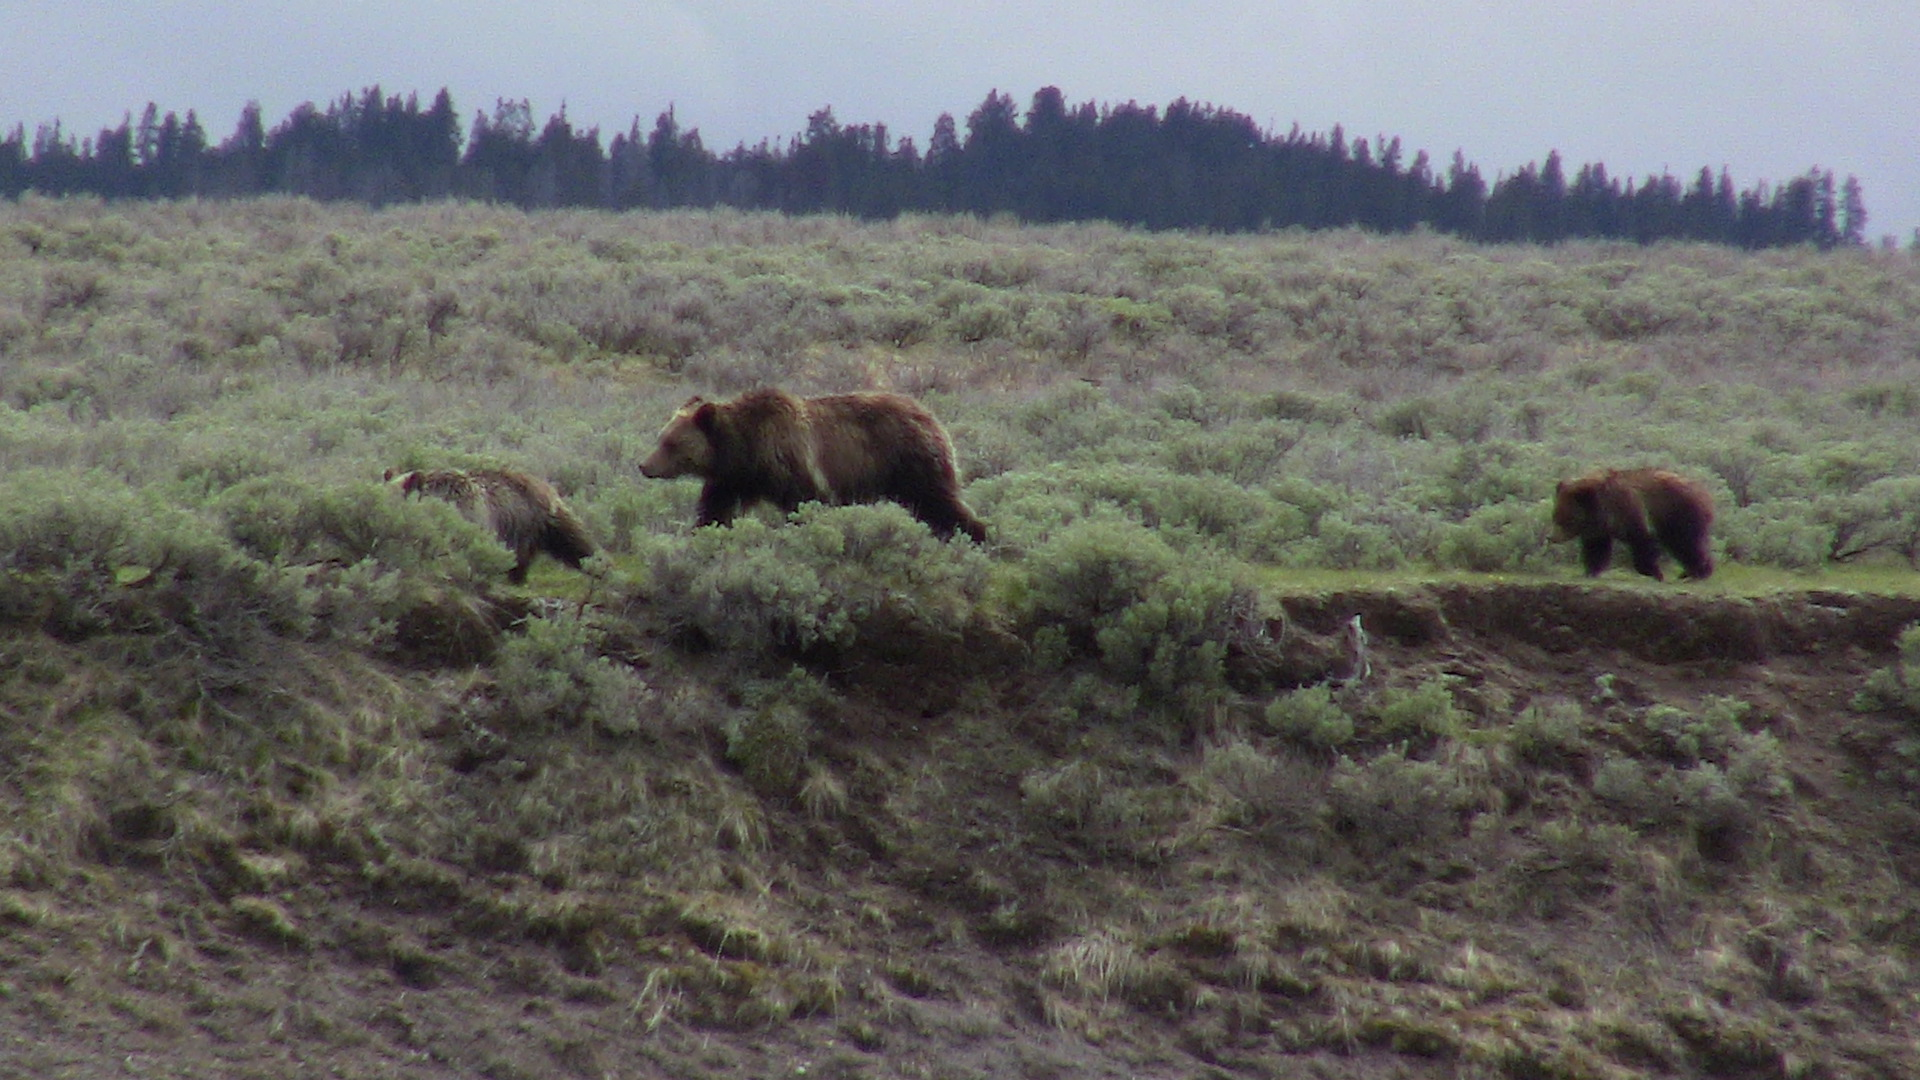 Mom grizzly bear with two cubs